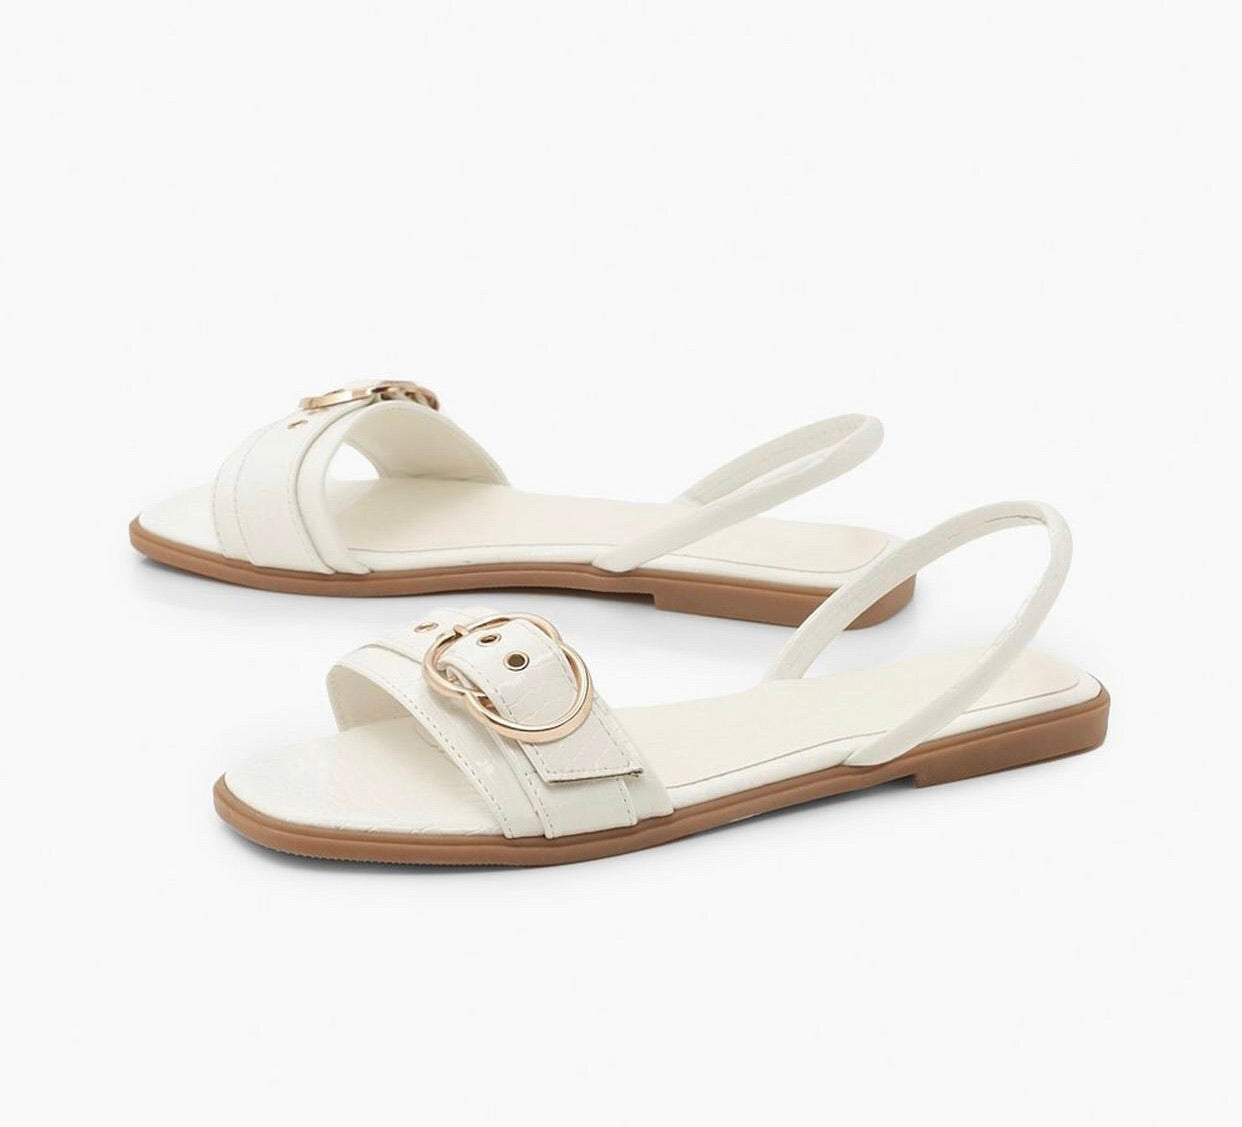 KRUSH WHITE TRIM SLINGBACK SANDALS